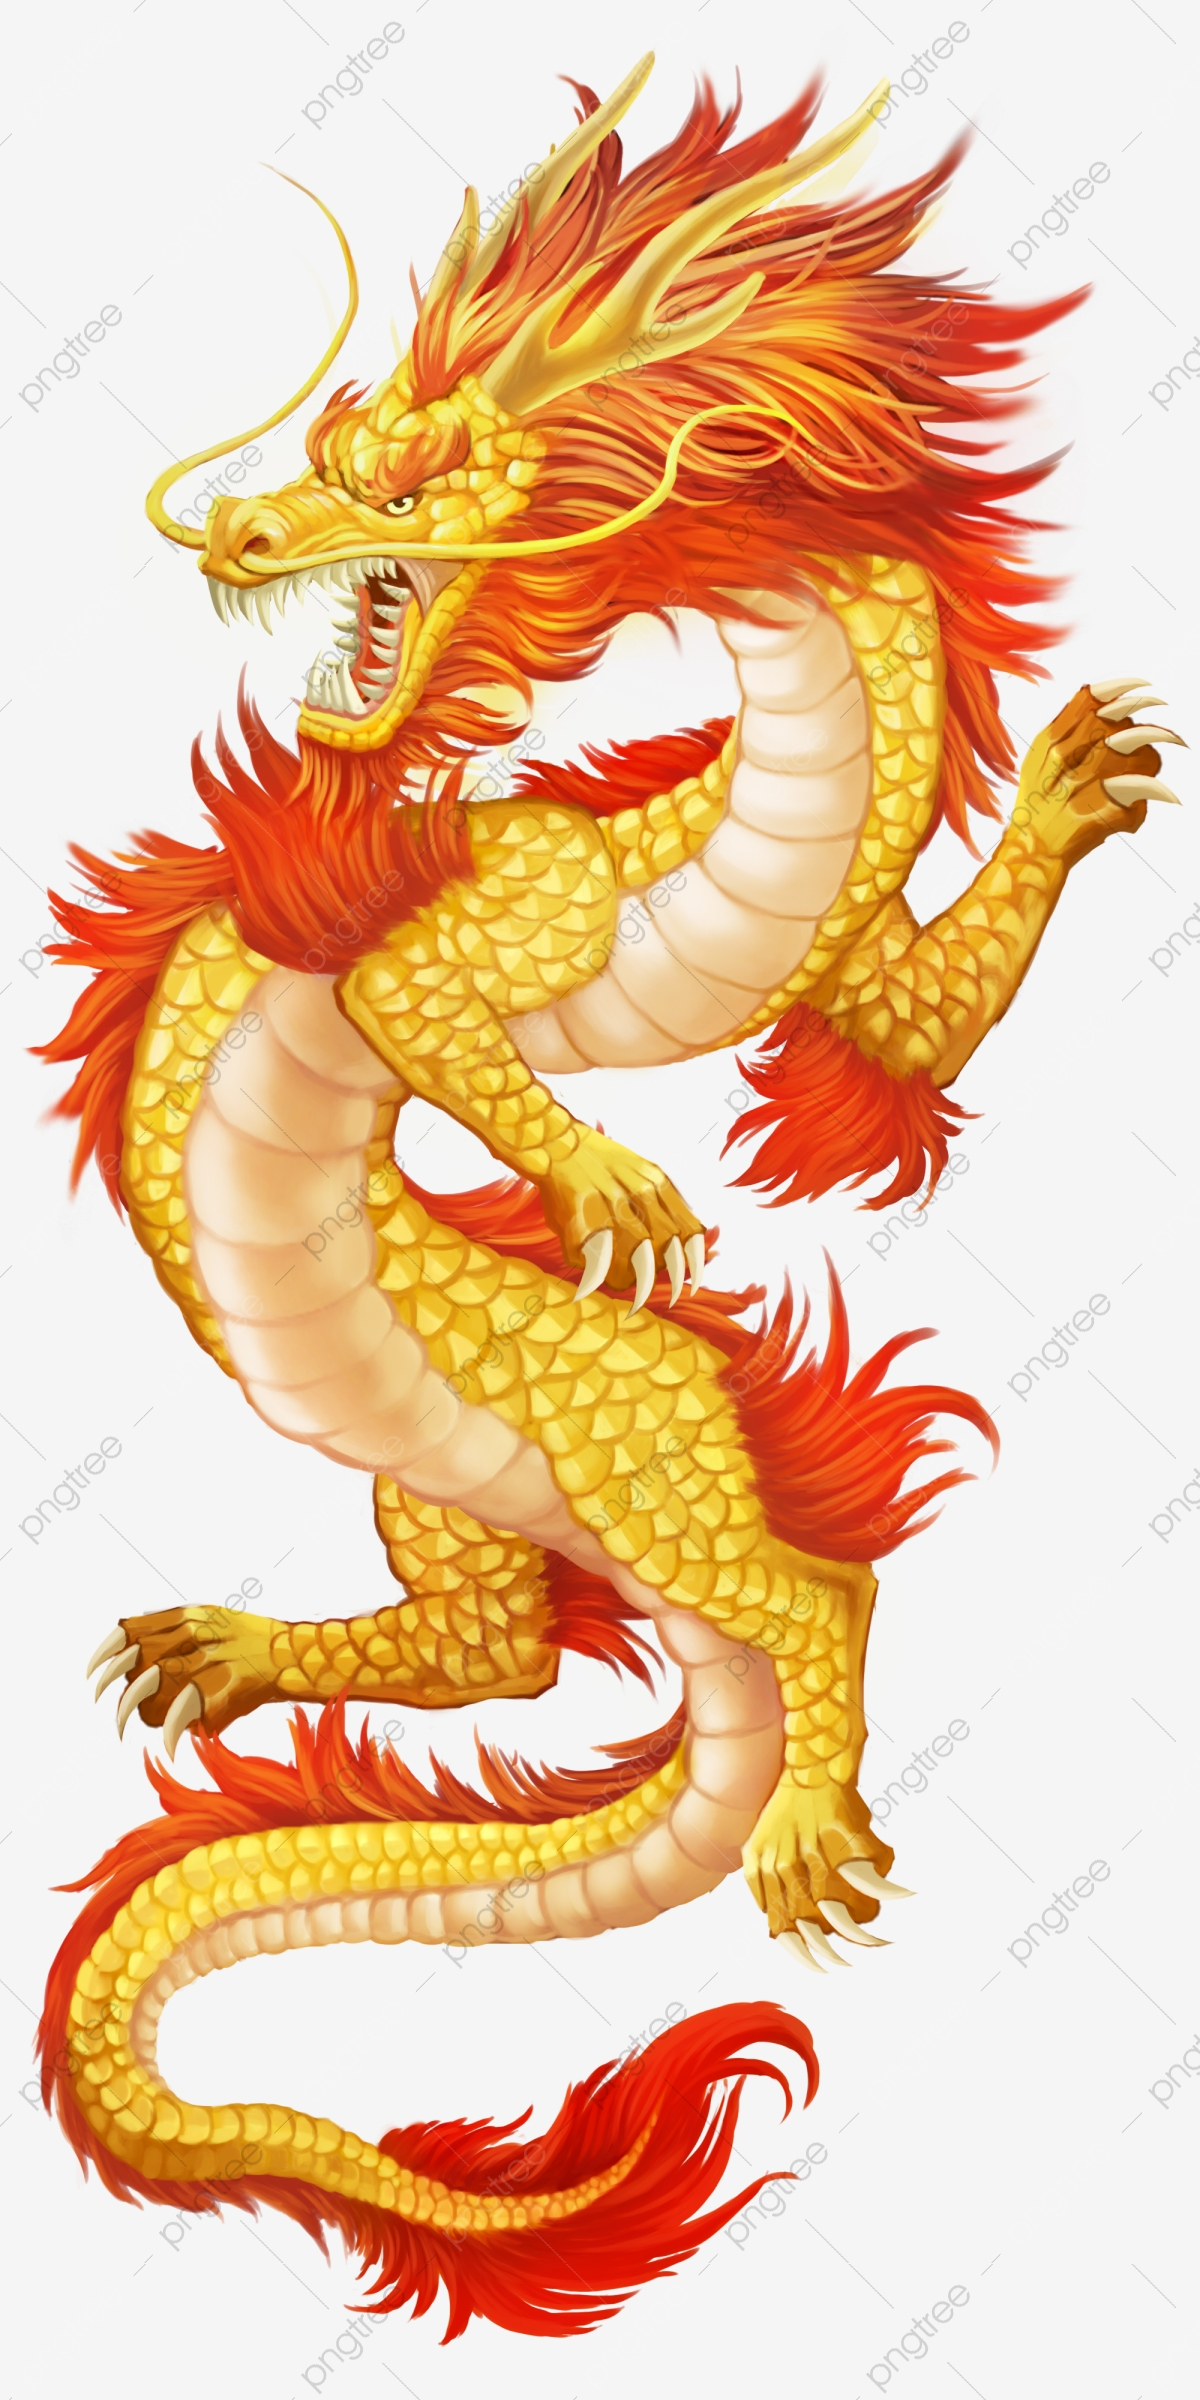 Dragon Png Vector Psd And Clipart With Transparent Background